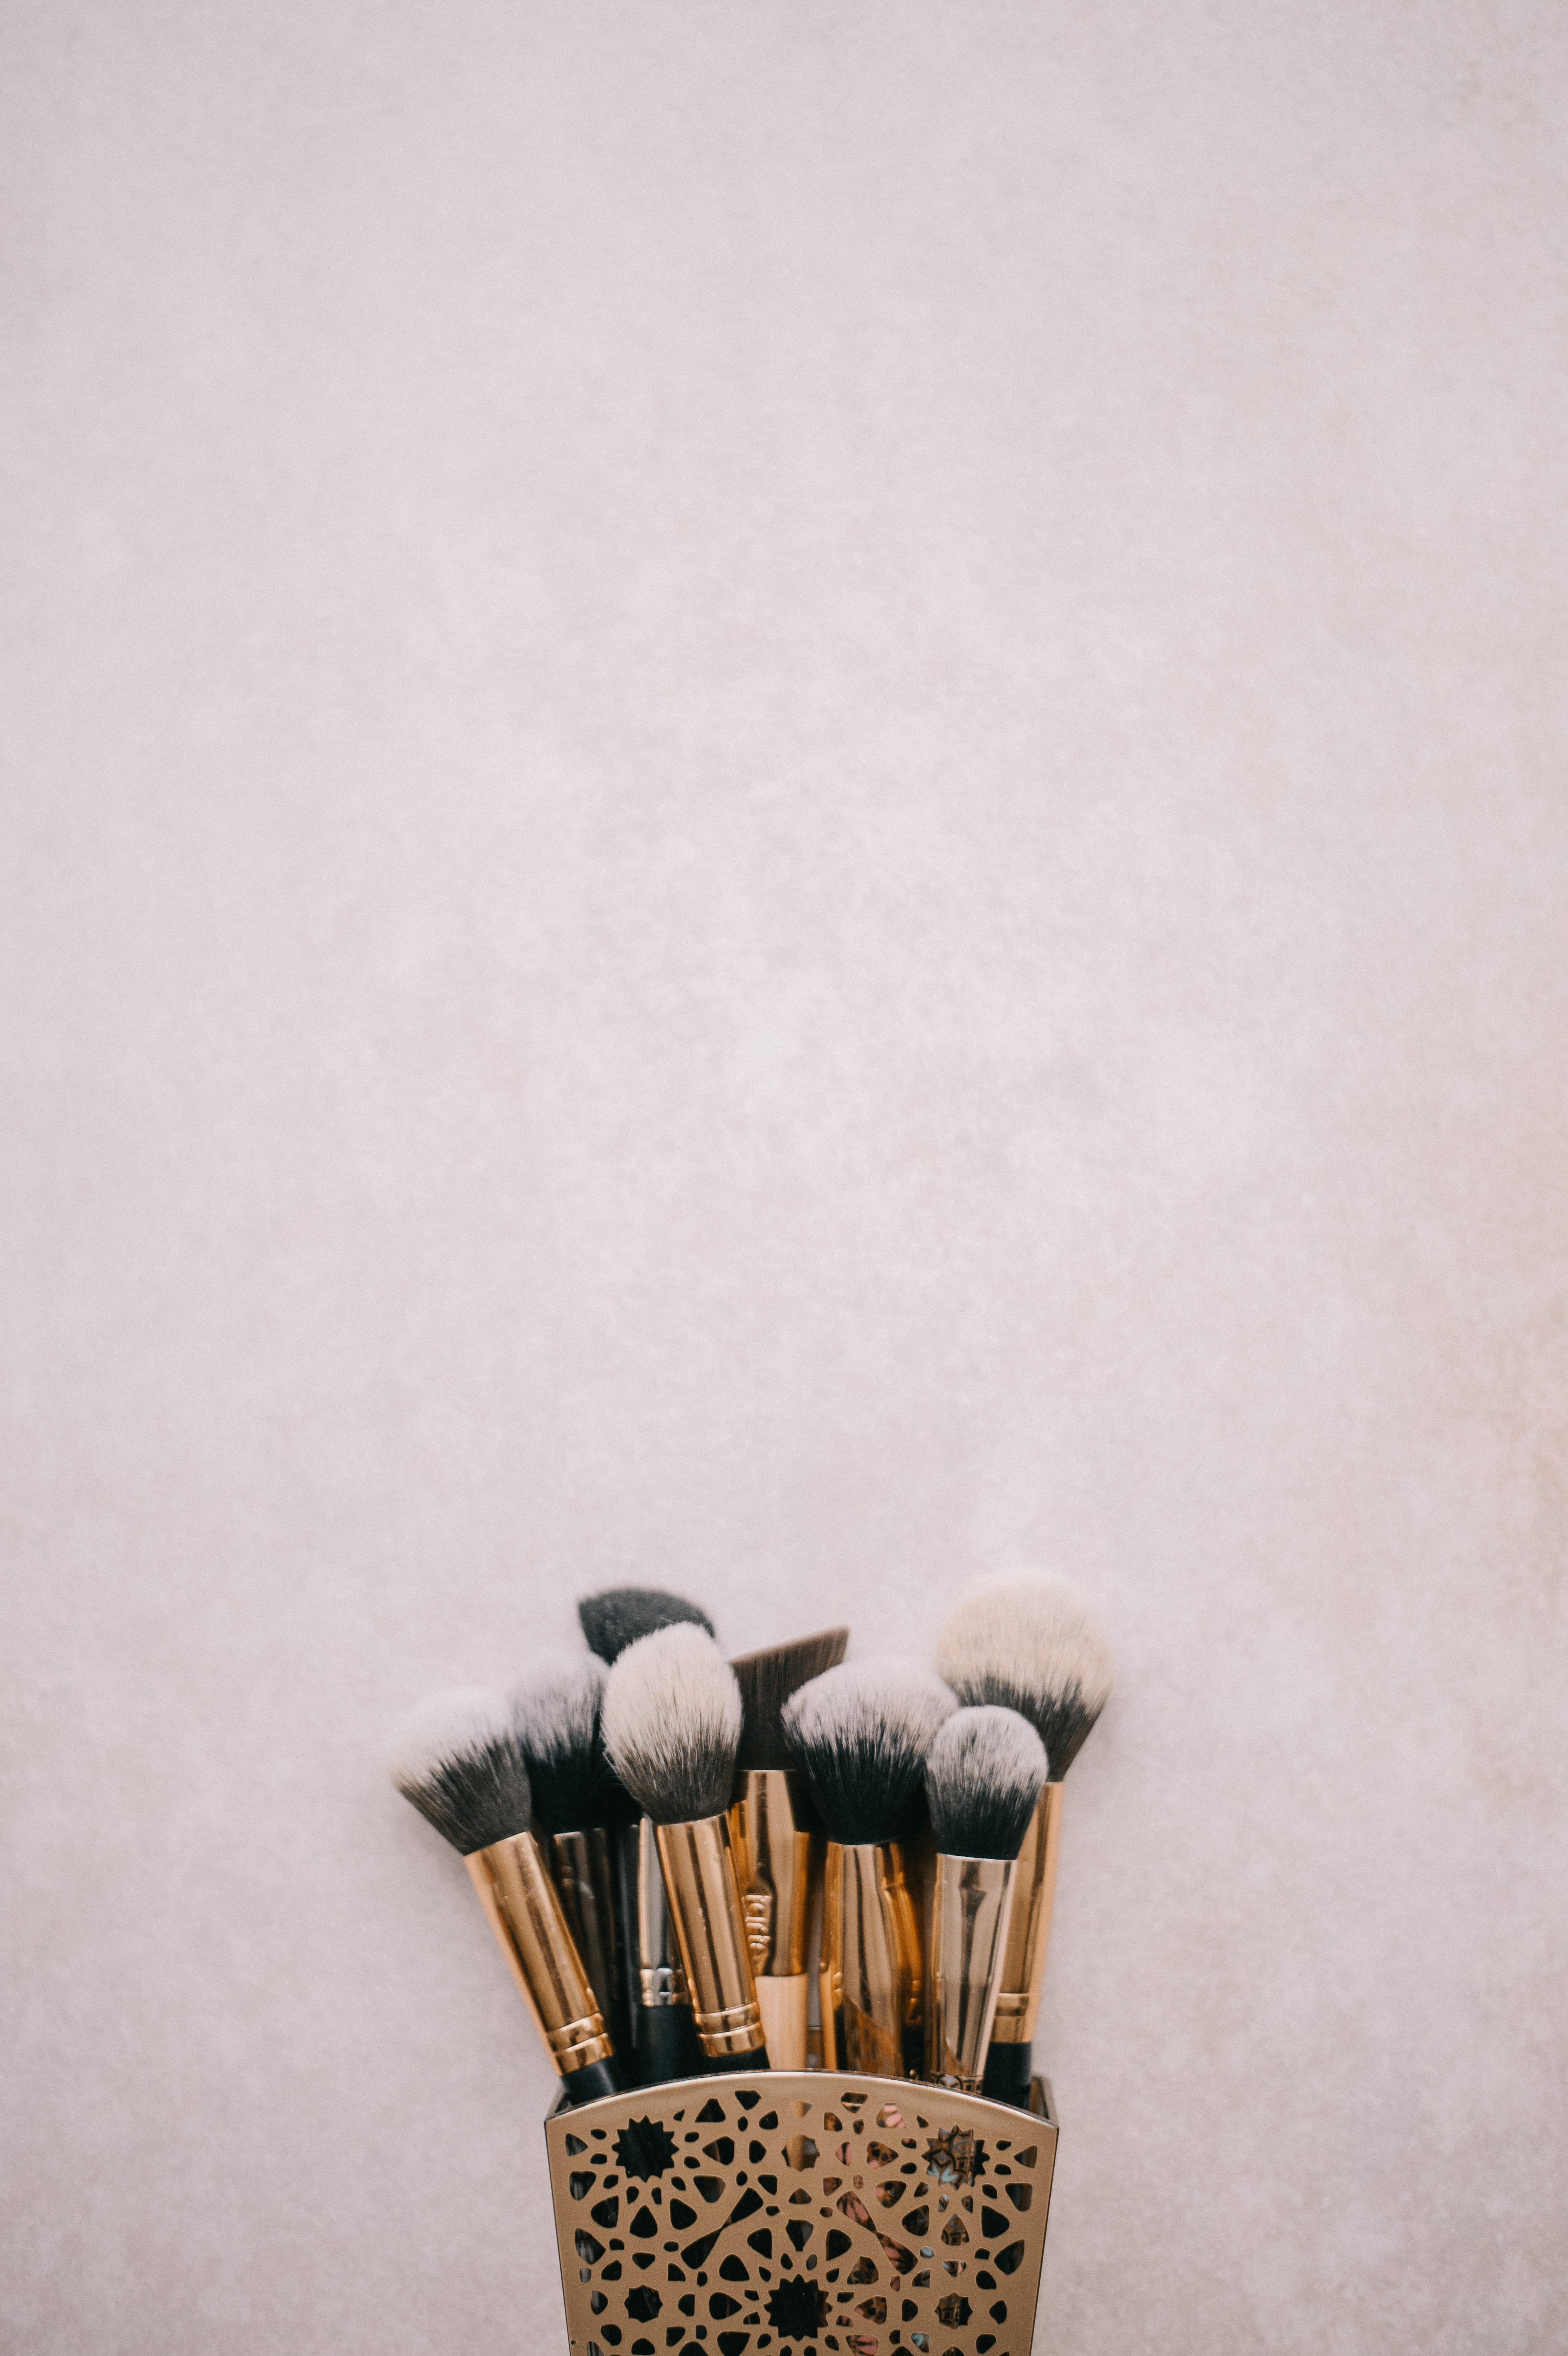 brass-colored-and-black makeup brush kit